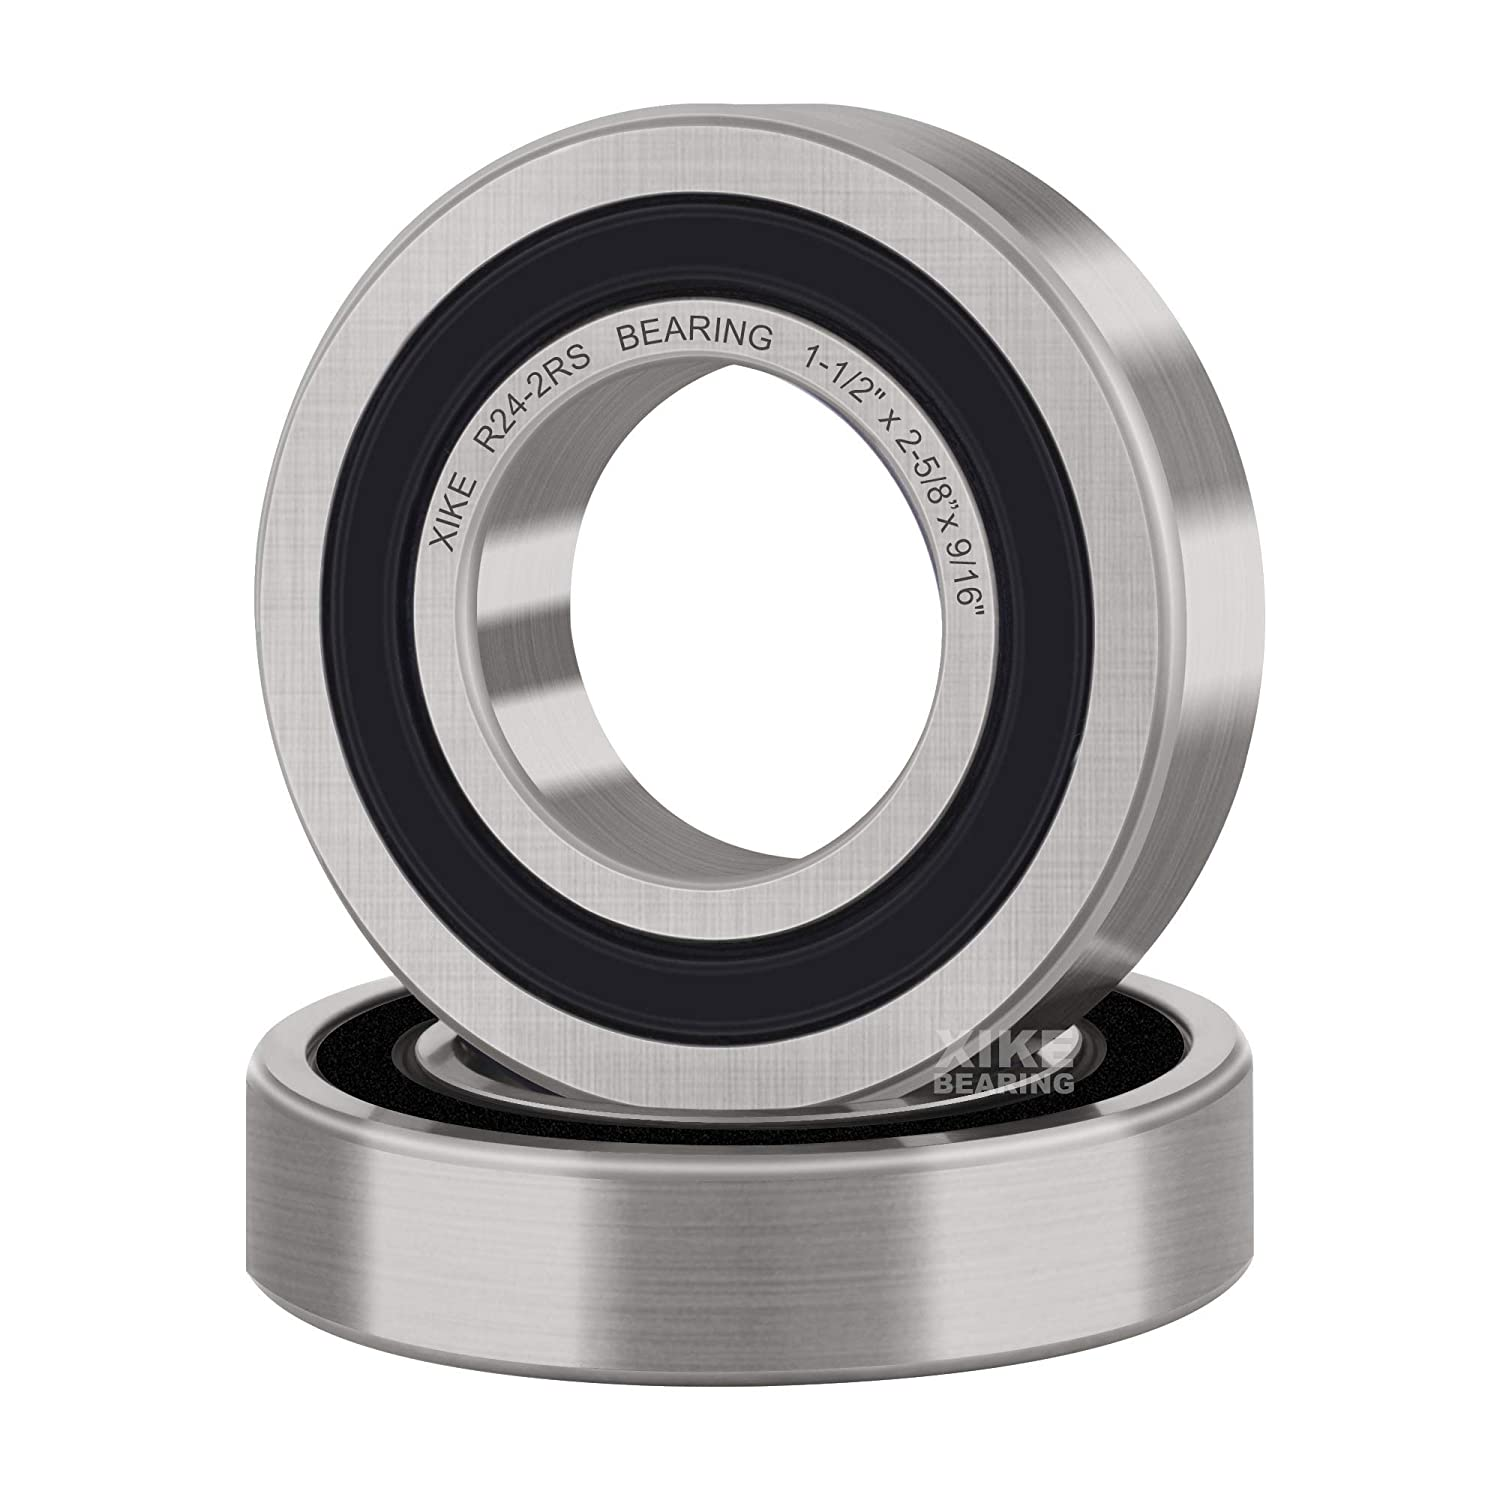 XiKe 2 Pcs R24-2RS Double Rubber Seal Bearings 1-1//2 x 2-5//8 x 9//16 Deep Groove Ball Bearings. Pre-Lubricated and Stable Performance and Cost Effective